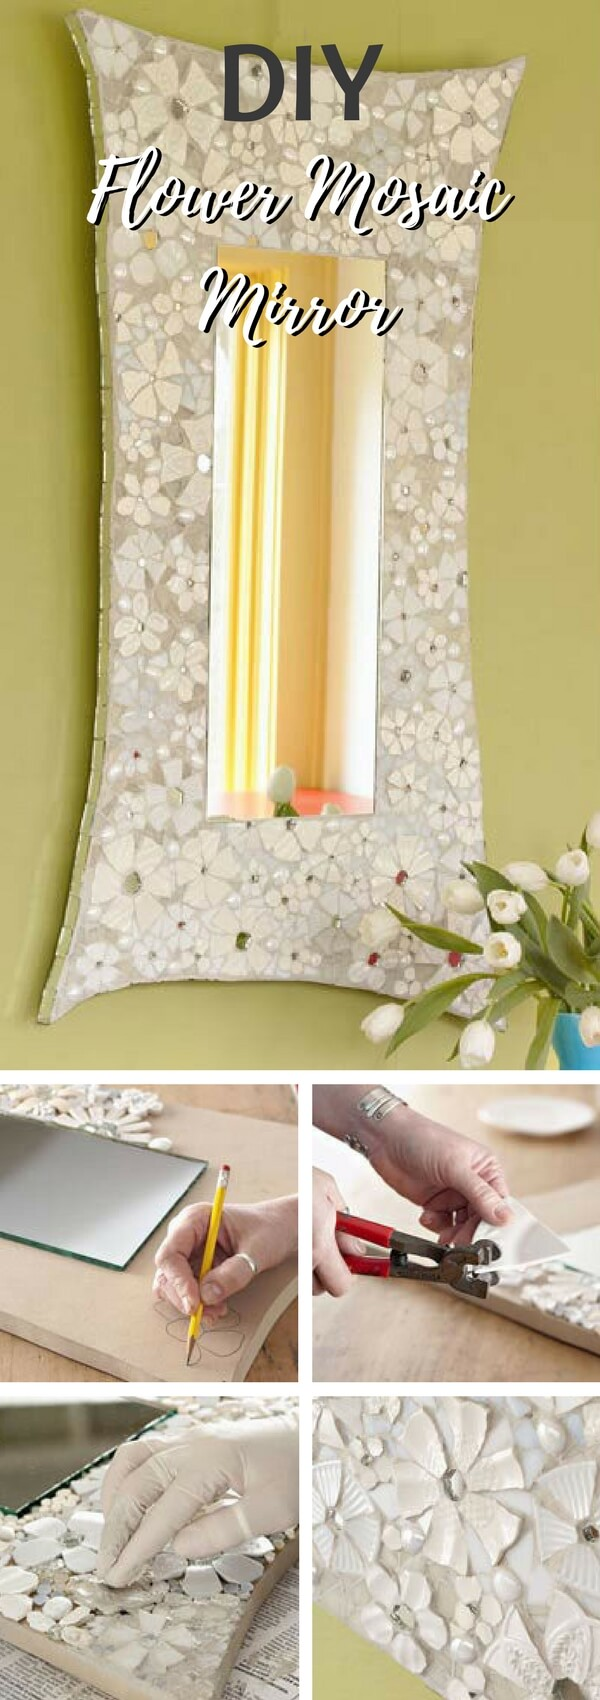 35 best diy mosaic craft ideas and projects for 2018 create an intricate flower mosaic mirror diy solutioingenieria Image collections